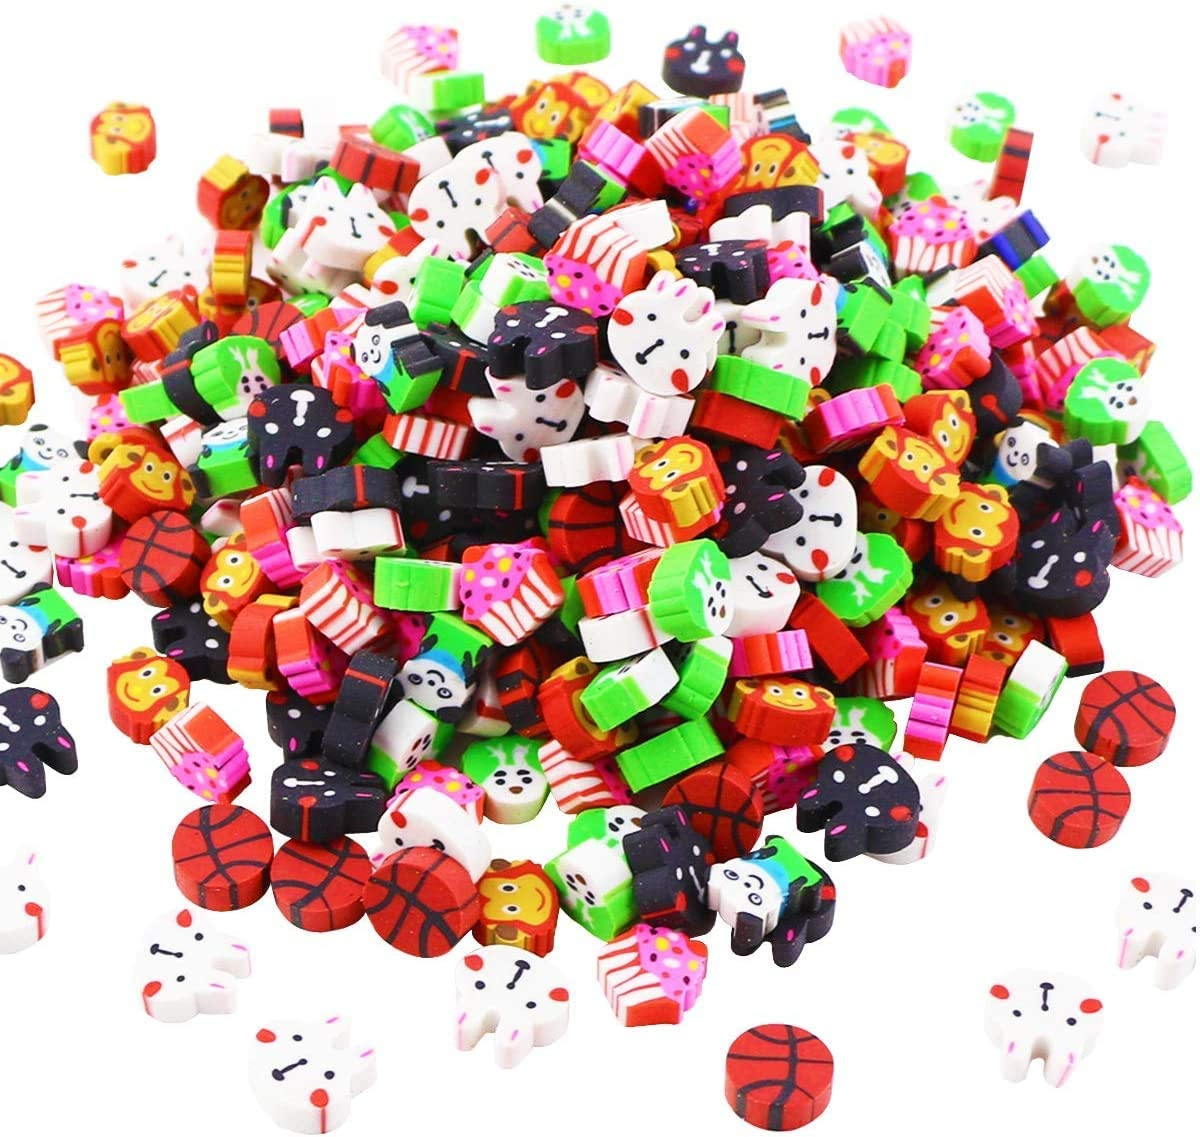 UPlama 400Pcs Assorted Adorable Collection Mini Eraser,Bulk School Erasers for Our Kids Gift